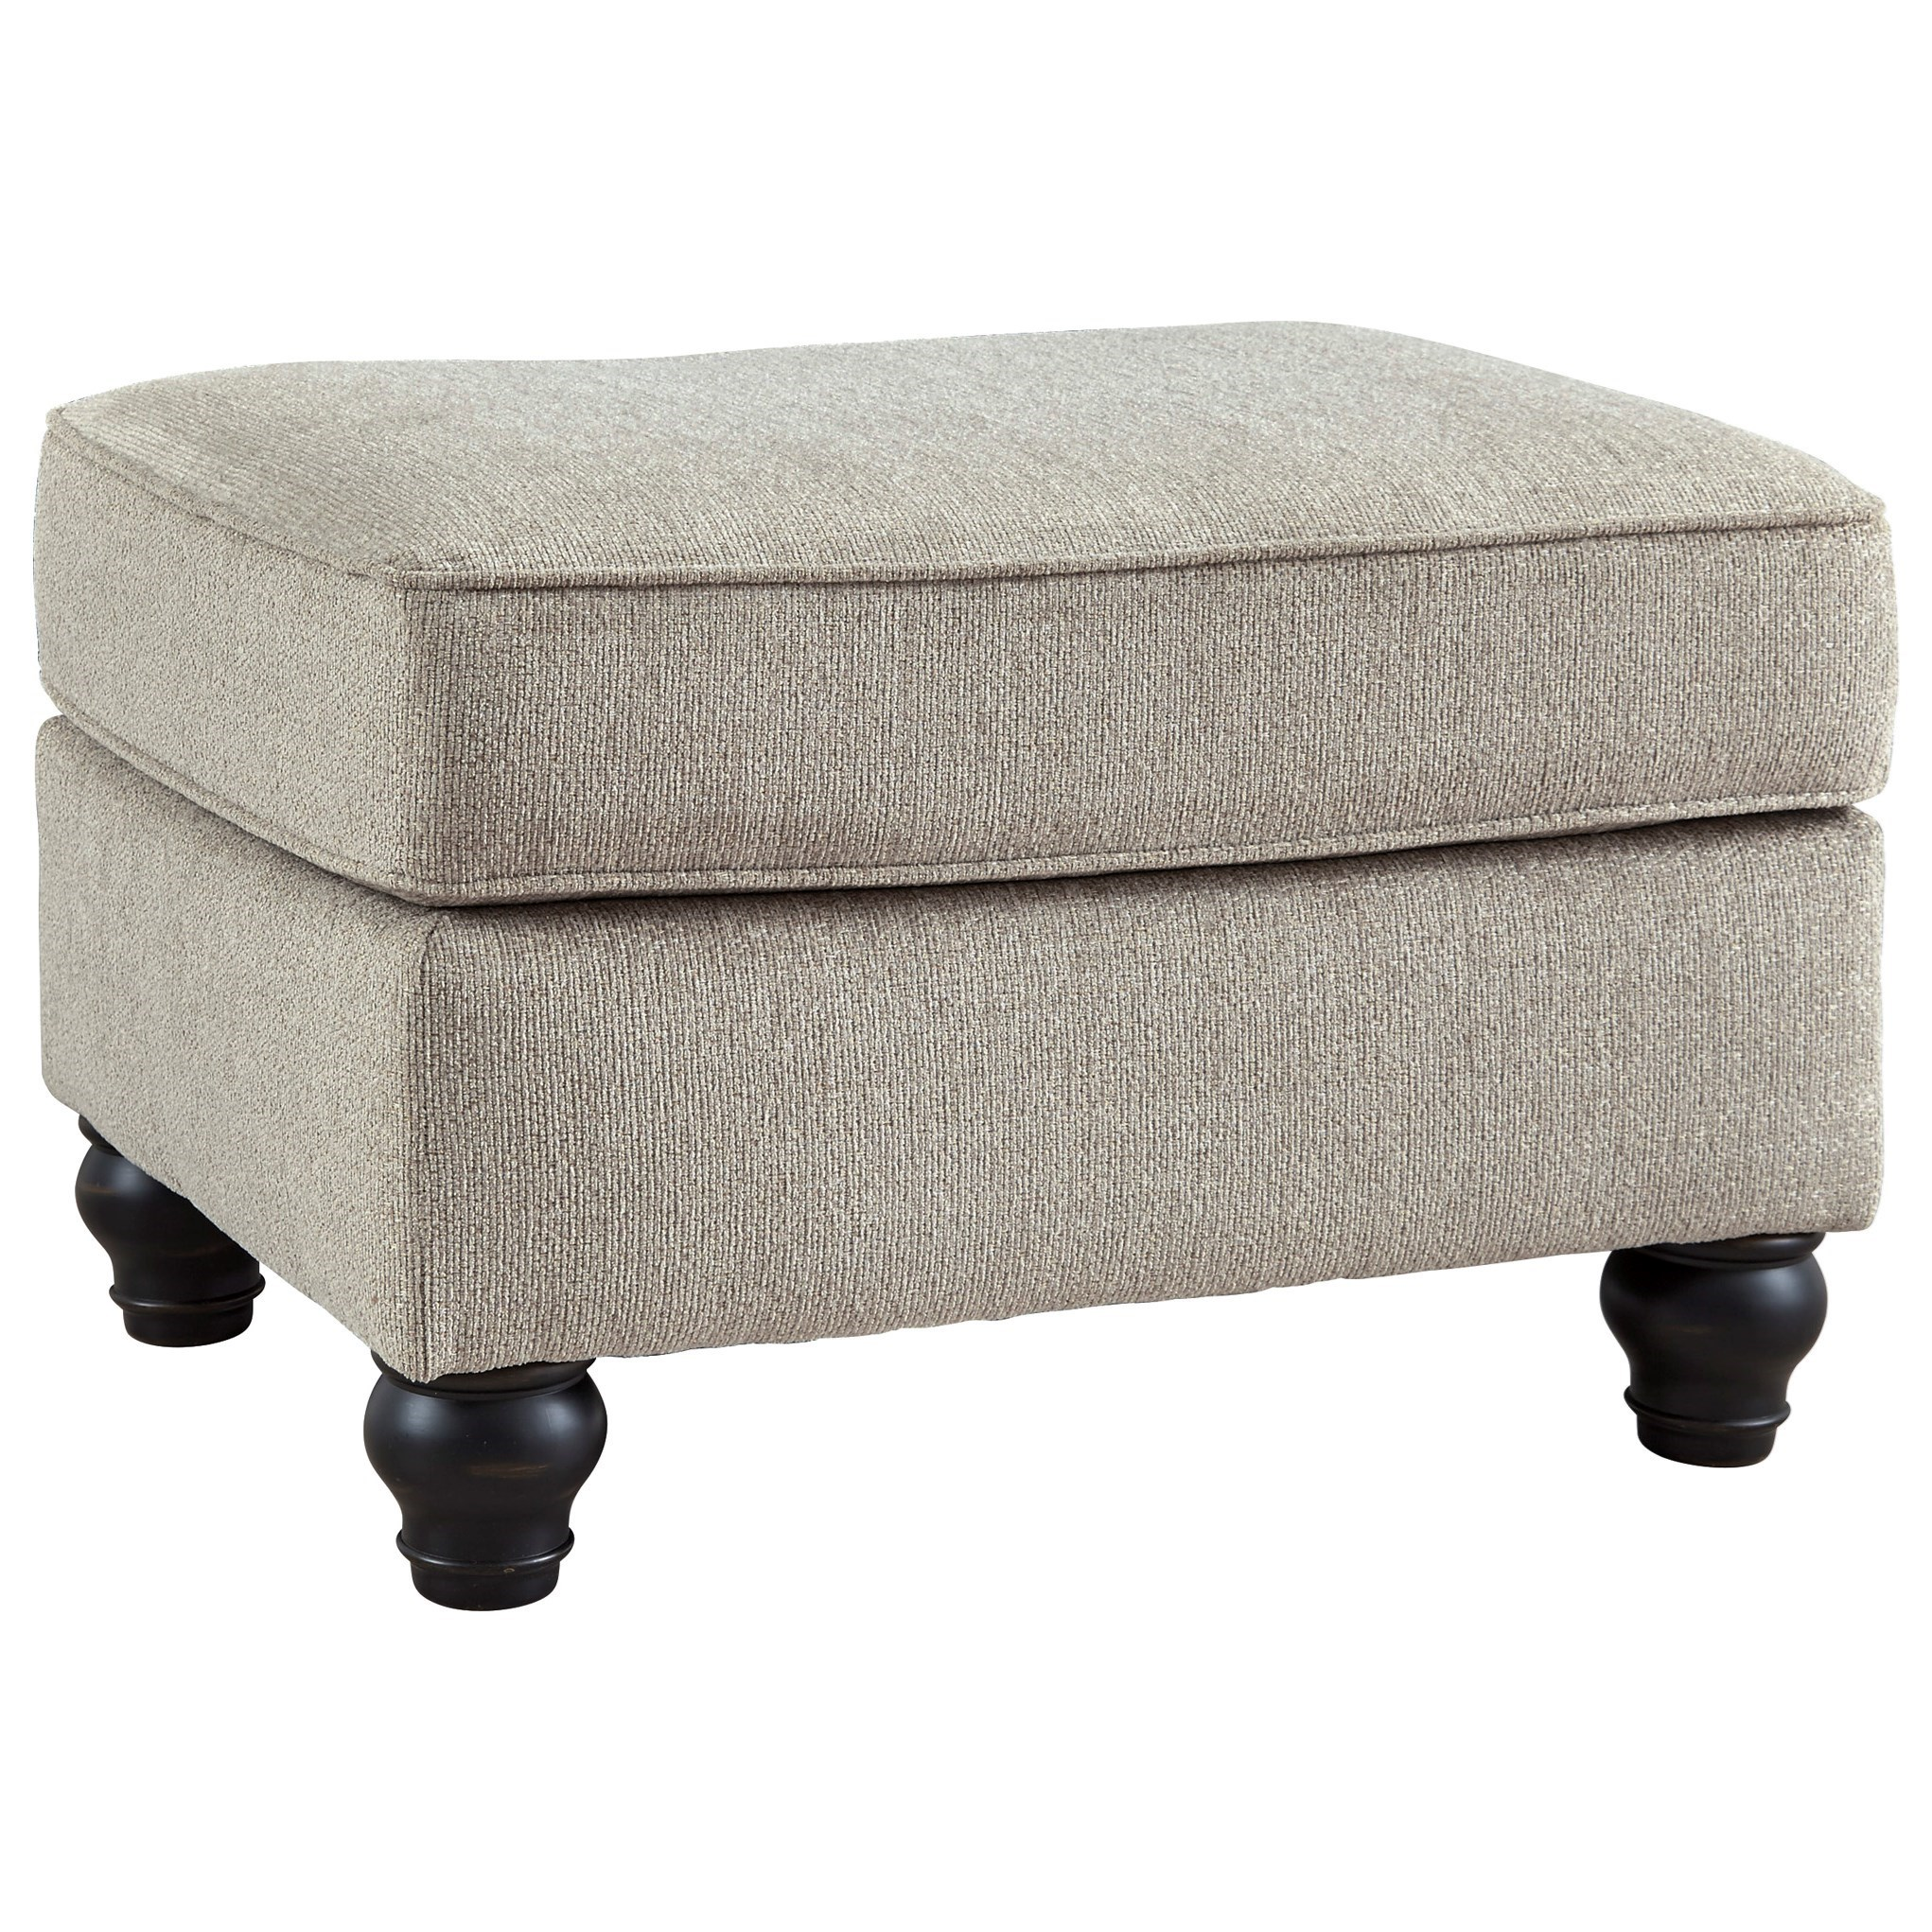 Benbrook Ottoman  by Signature Design by Ashley at Rife's Home Furniture